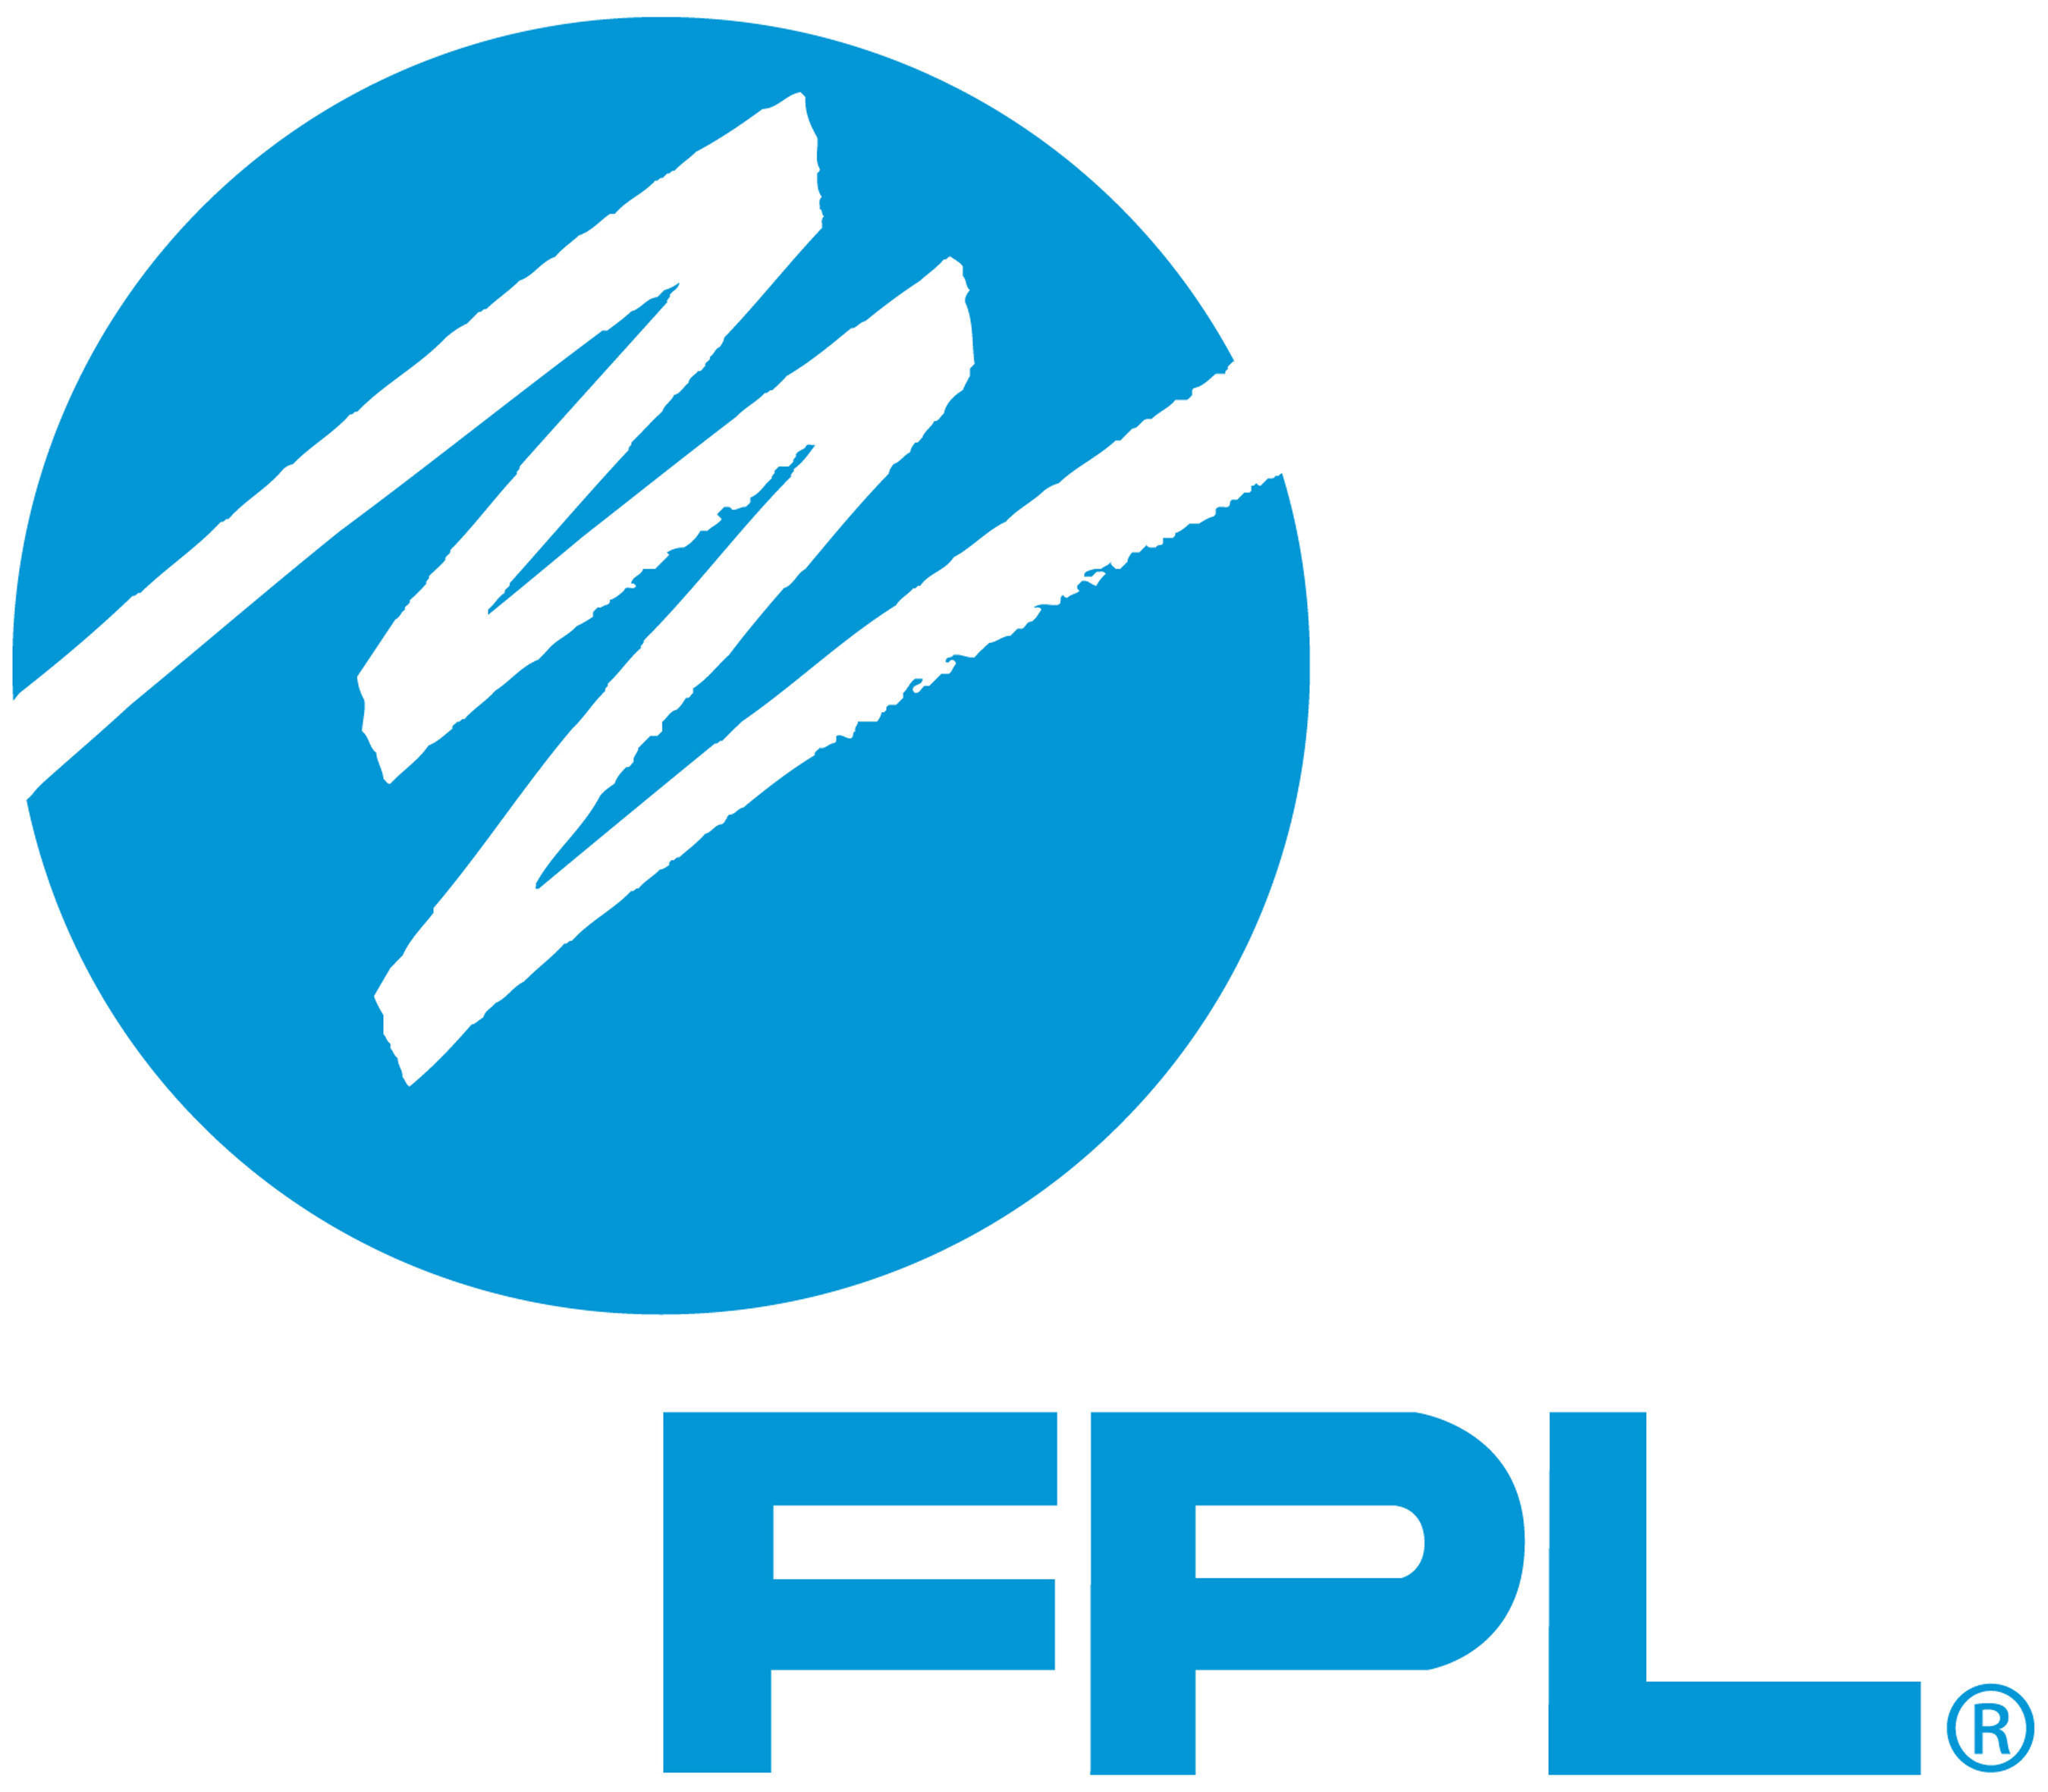 FL62738LOGO Utility Launches Energy Storage Project In Southern Florida